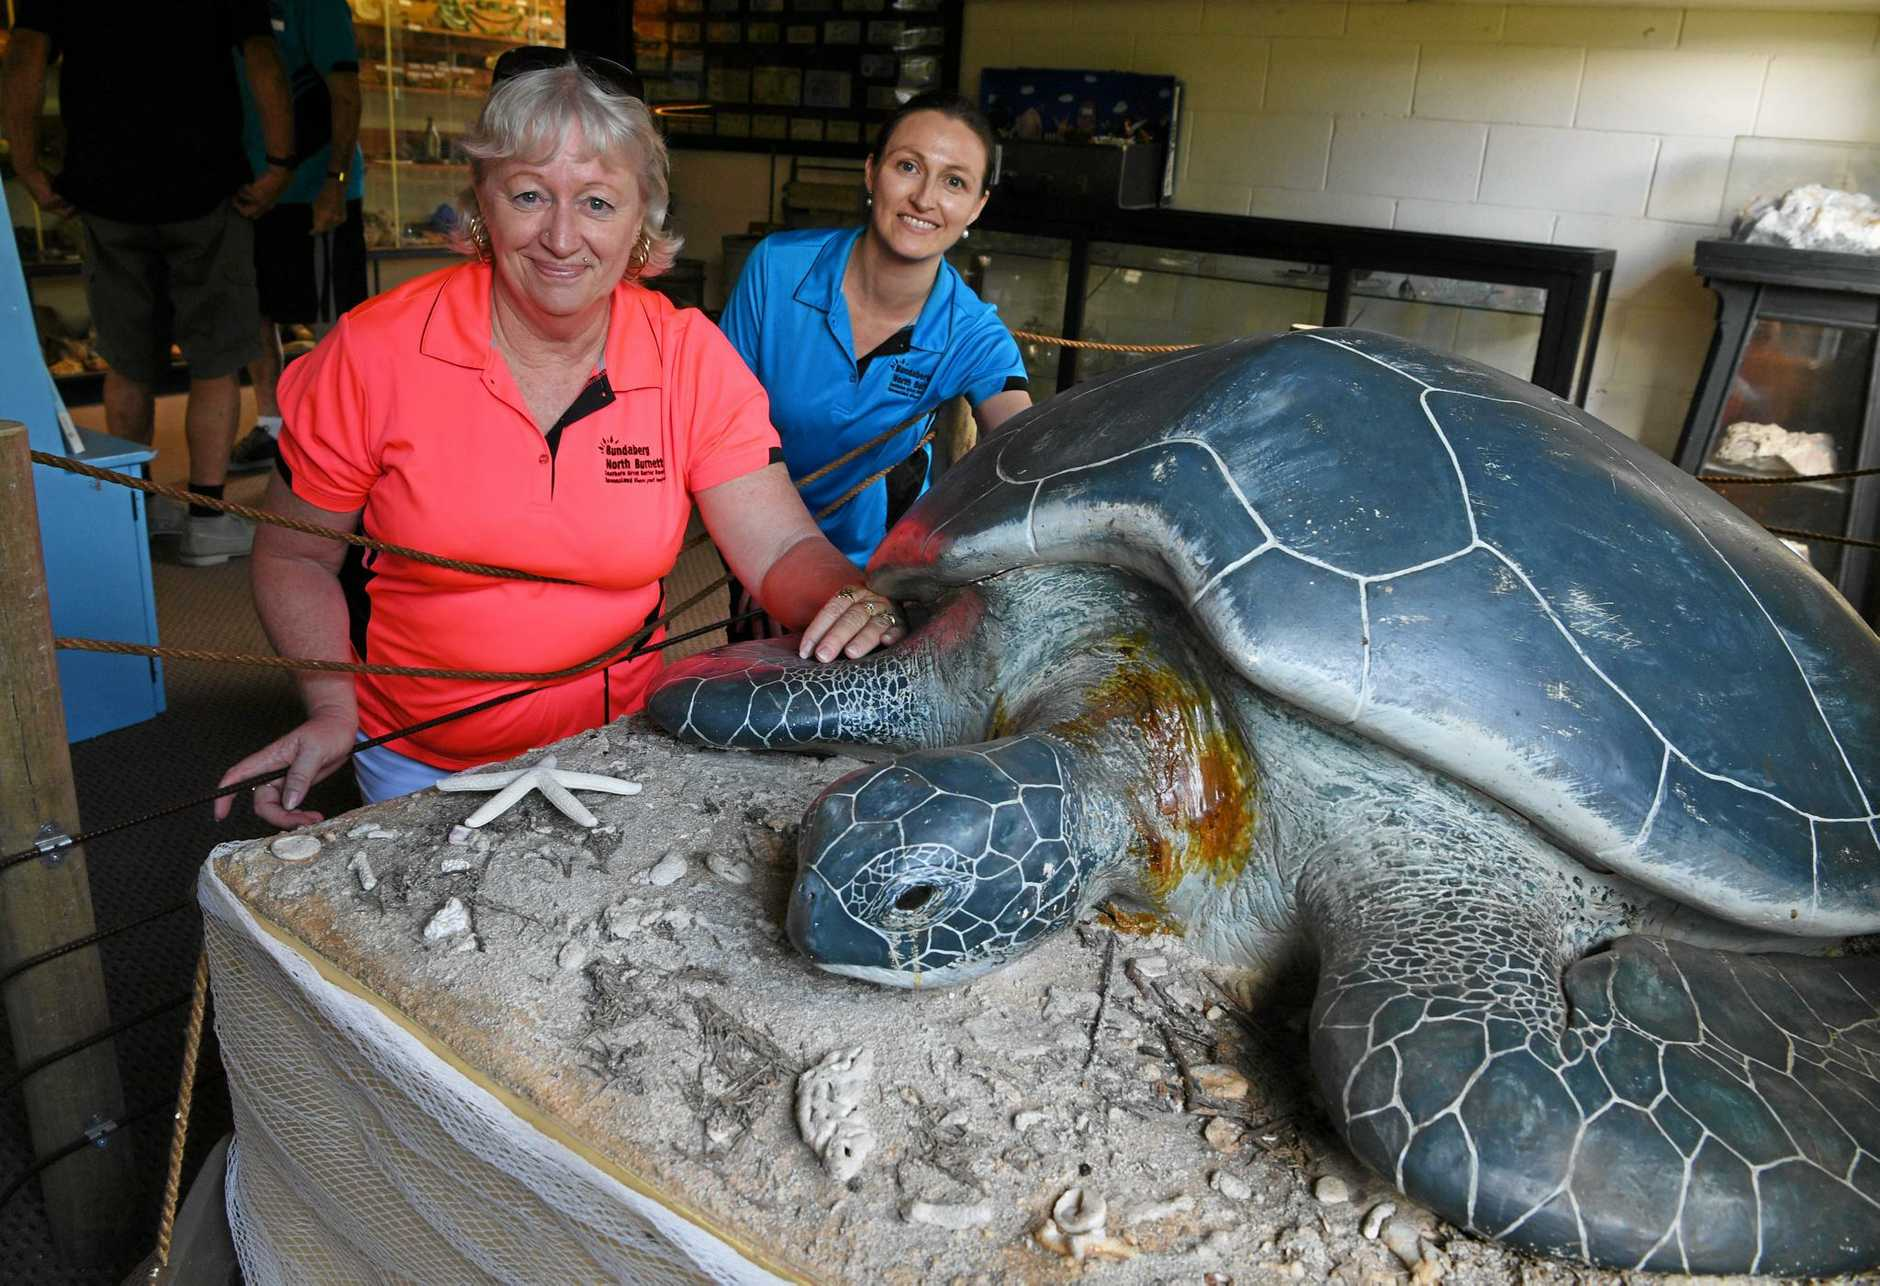 Bundaberg North Burnett Tourism's Maria Miles and Emily Cleaver with the turtle to be named at the Mystery Craters .